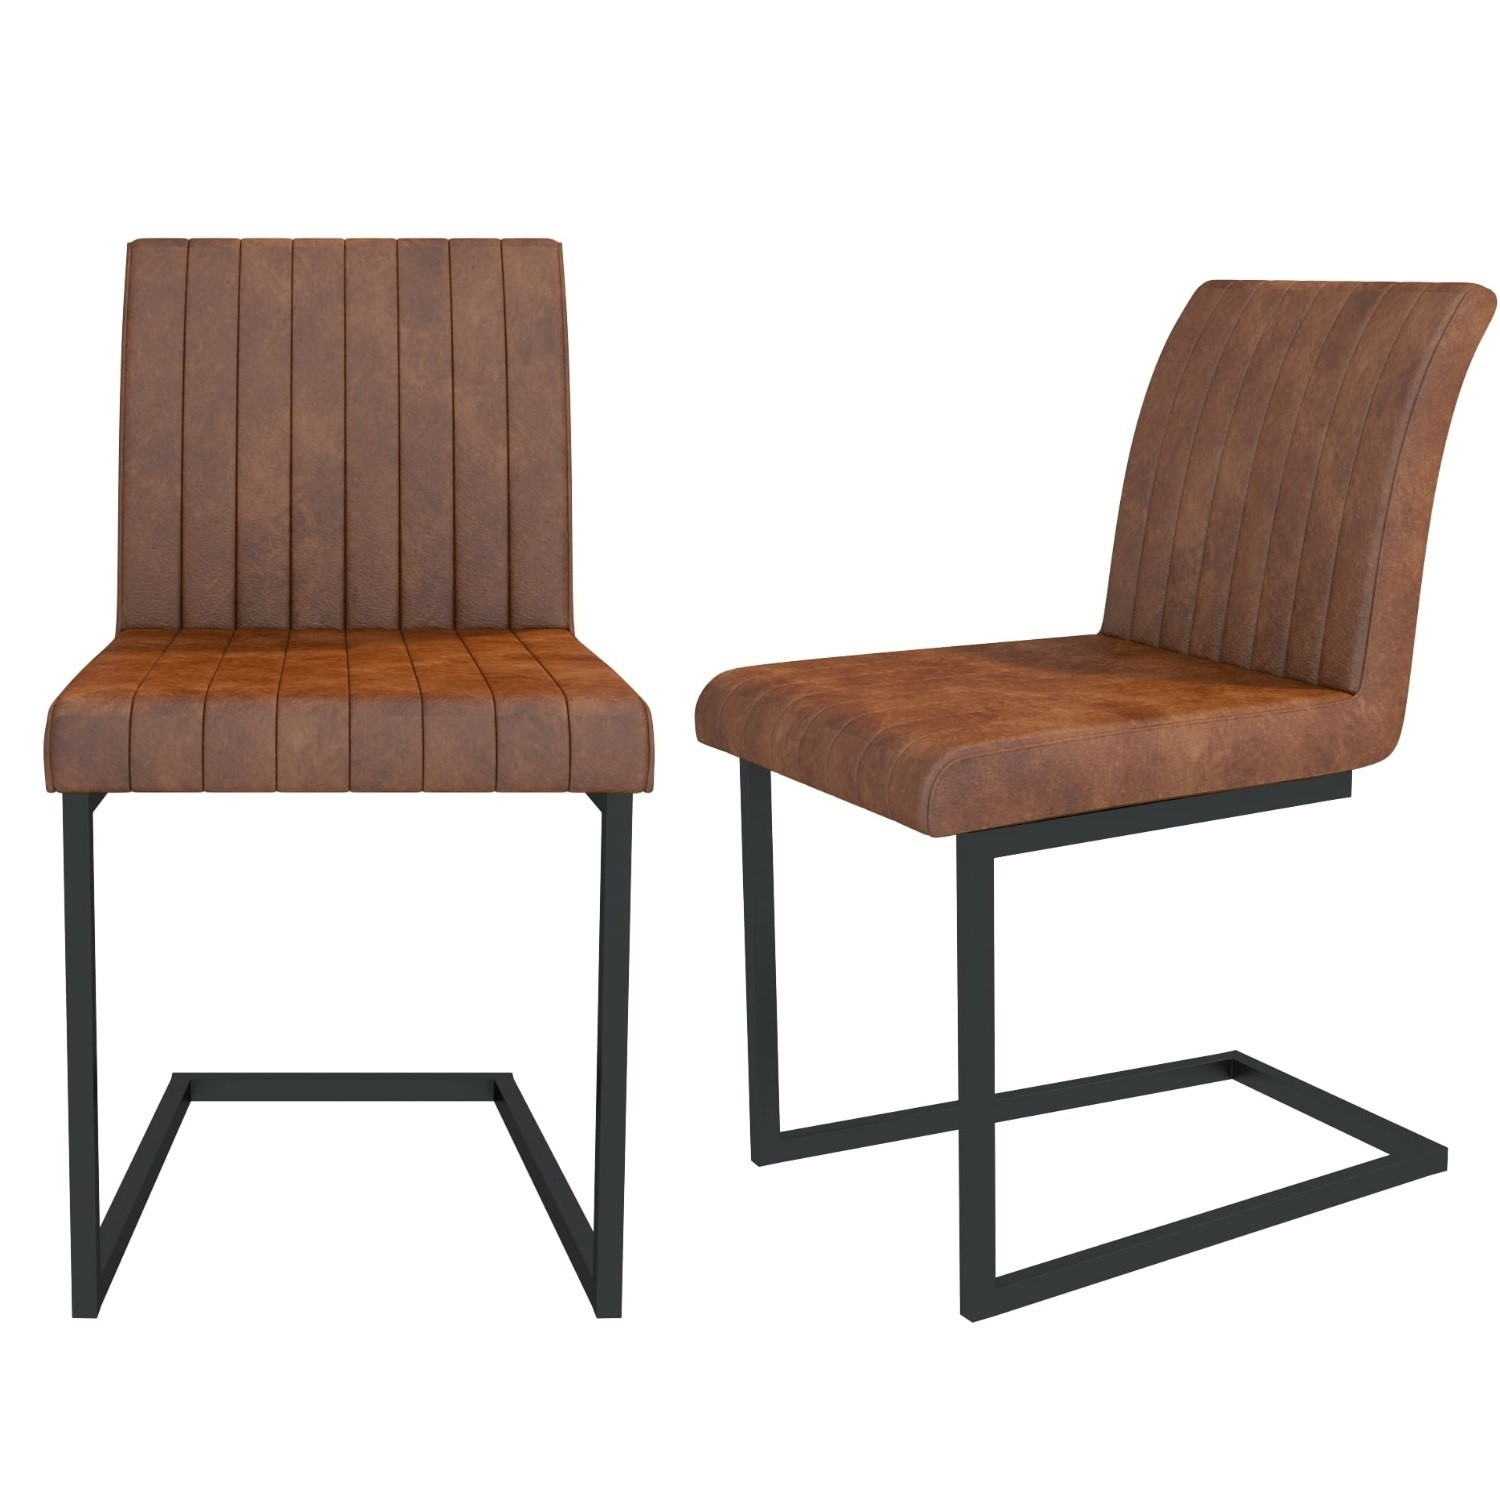 Pair Of Tan Leather Dining Chairs With Metal Frame Isaac